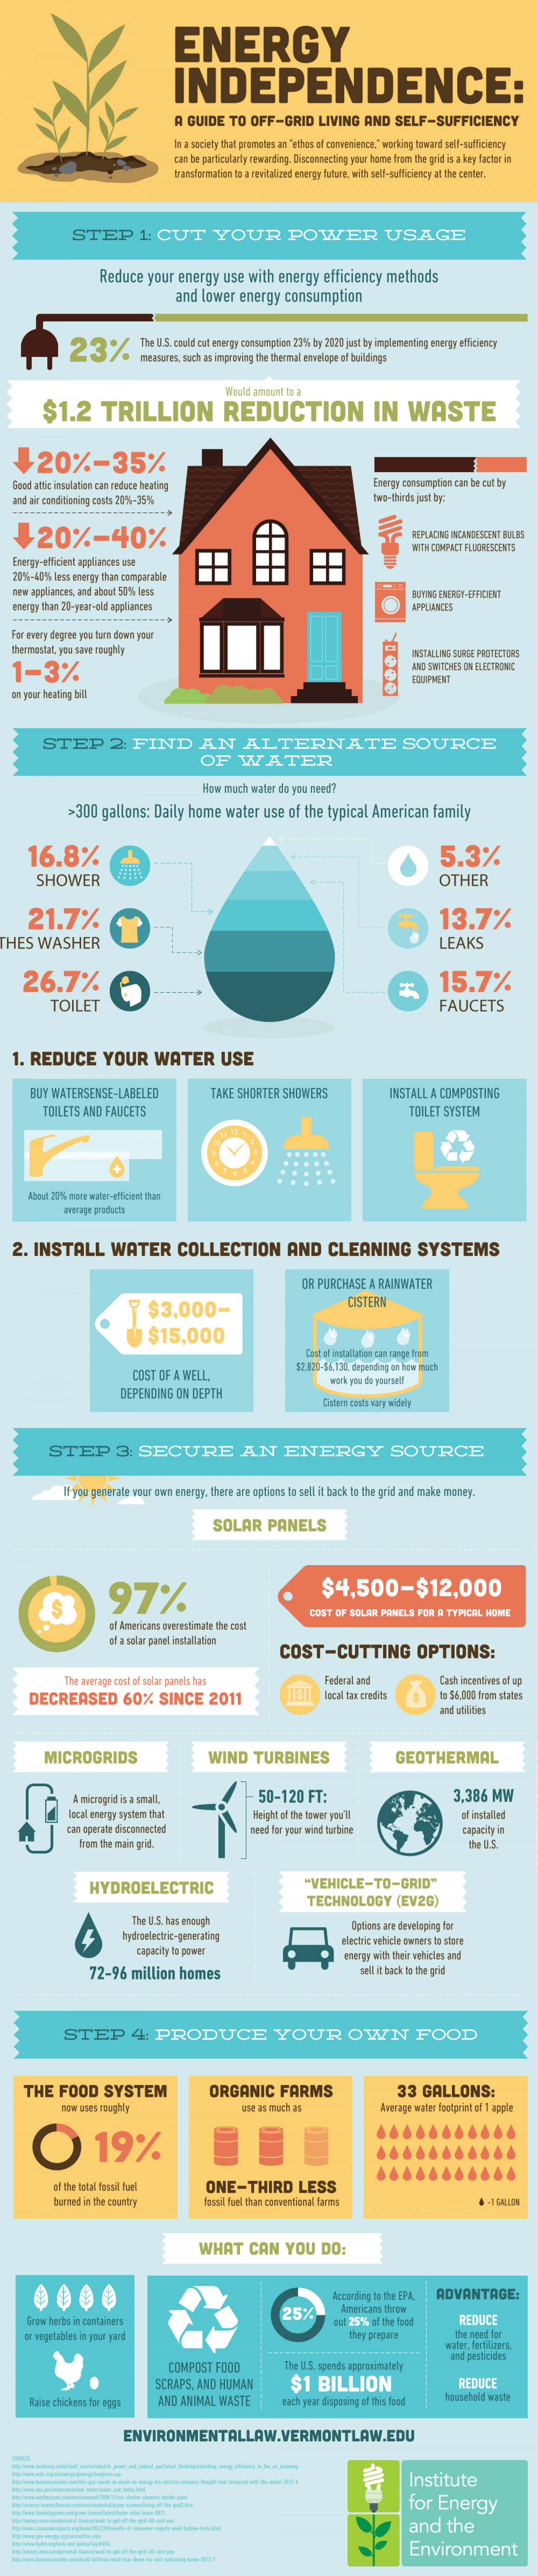 A Guide to Off Grid Living and Self Sufficiency Infographic